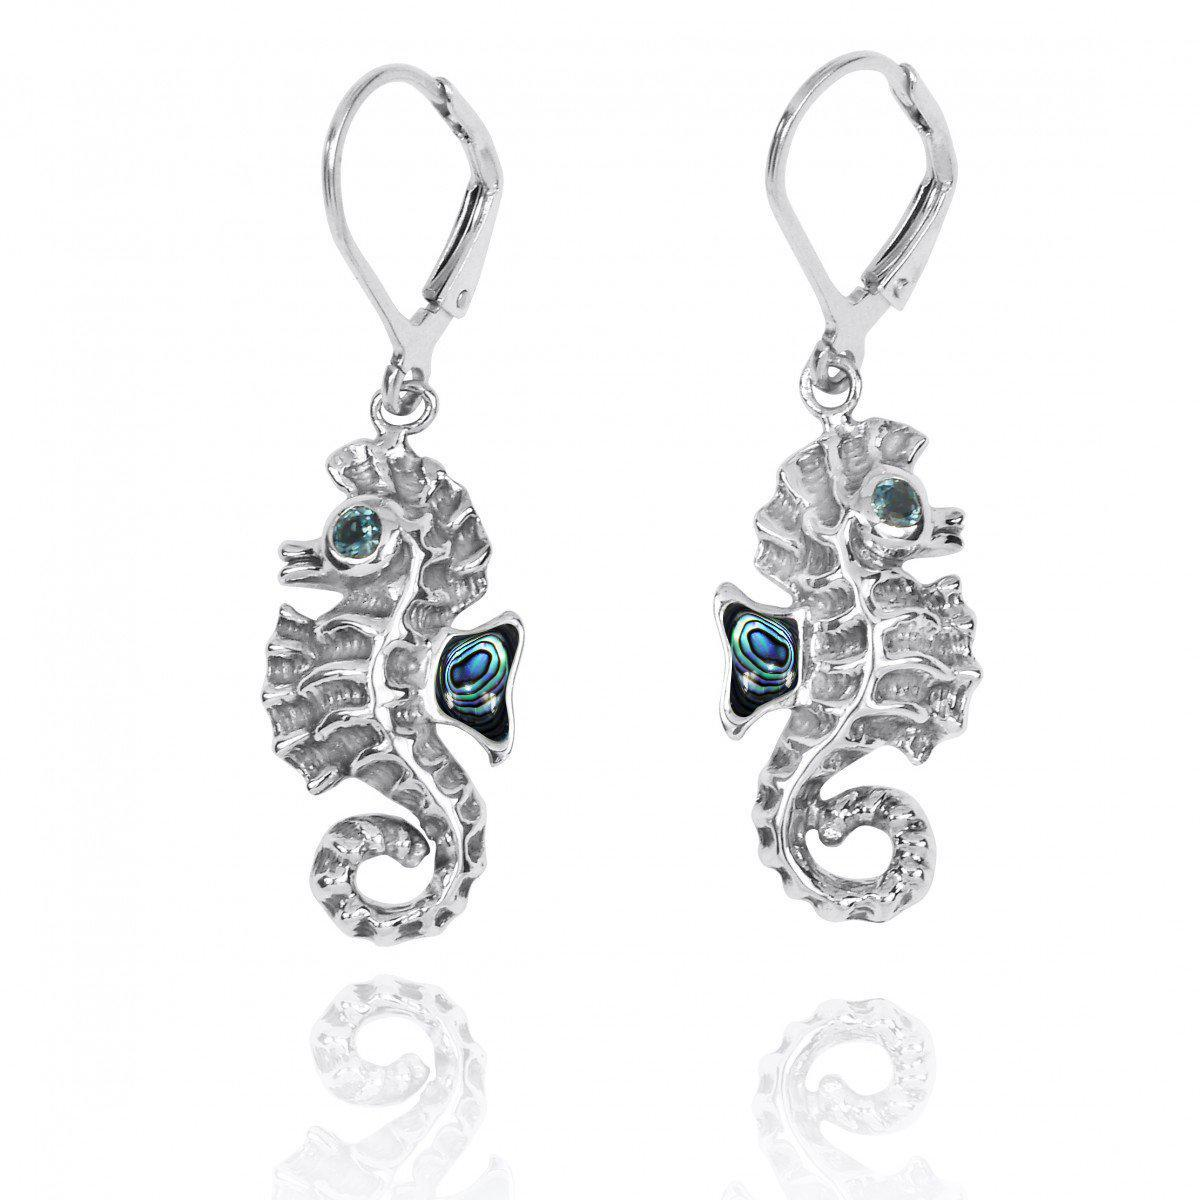 Sterling Silver Seahorse Lobster Clasp Earrings with Abalone Shell and London Blue Topaz